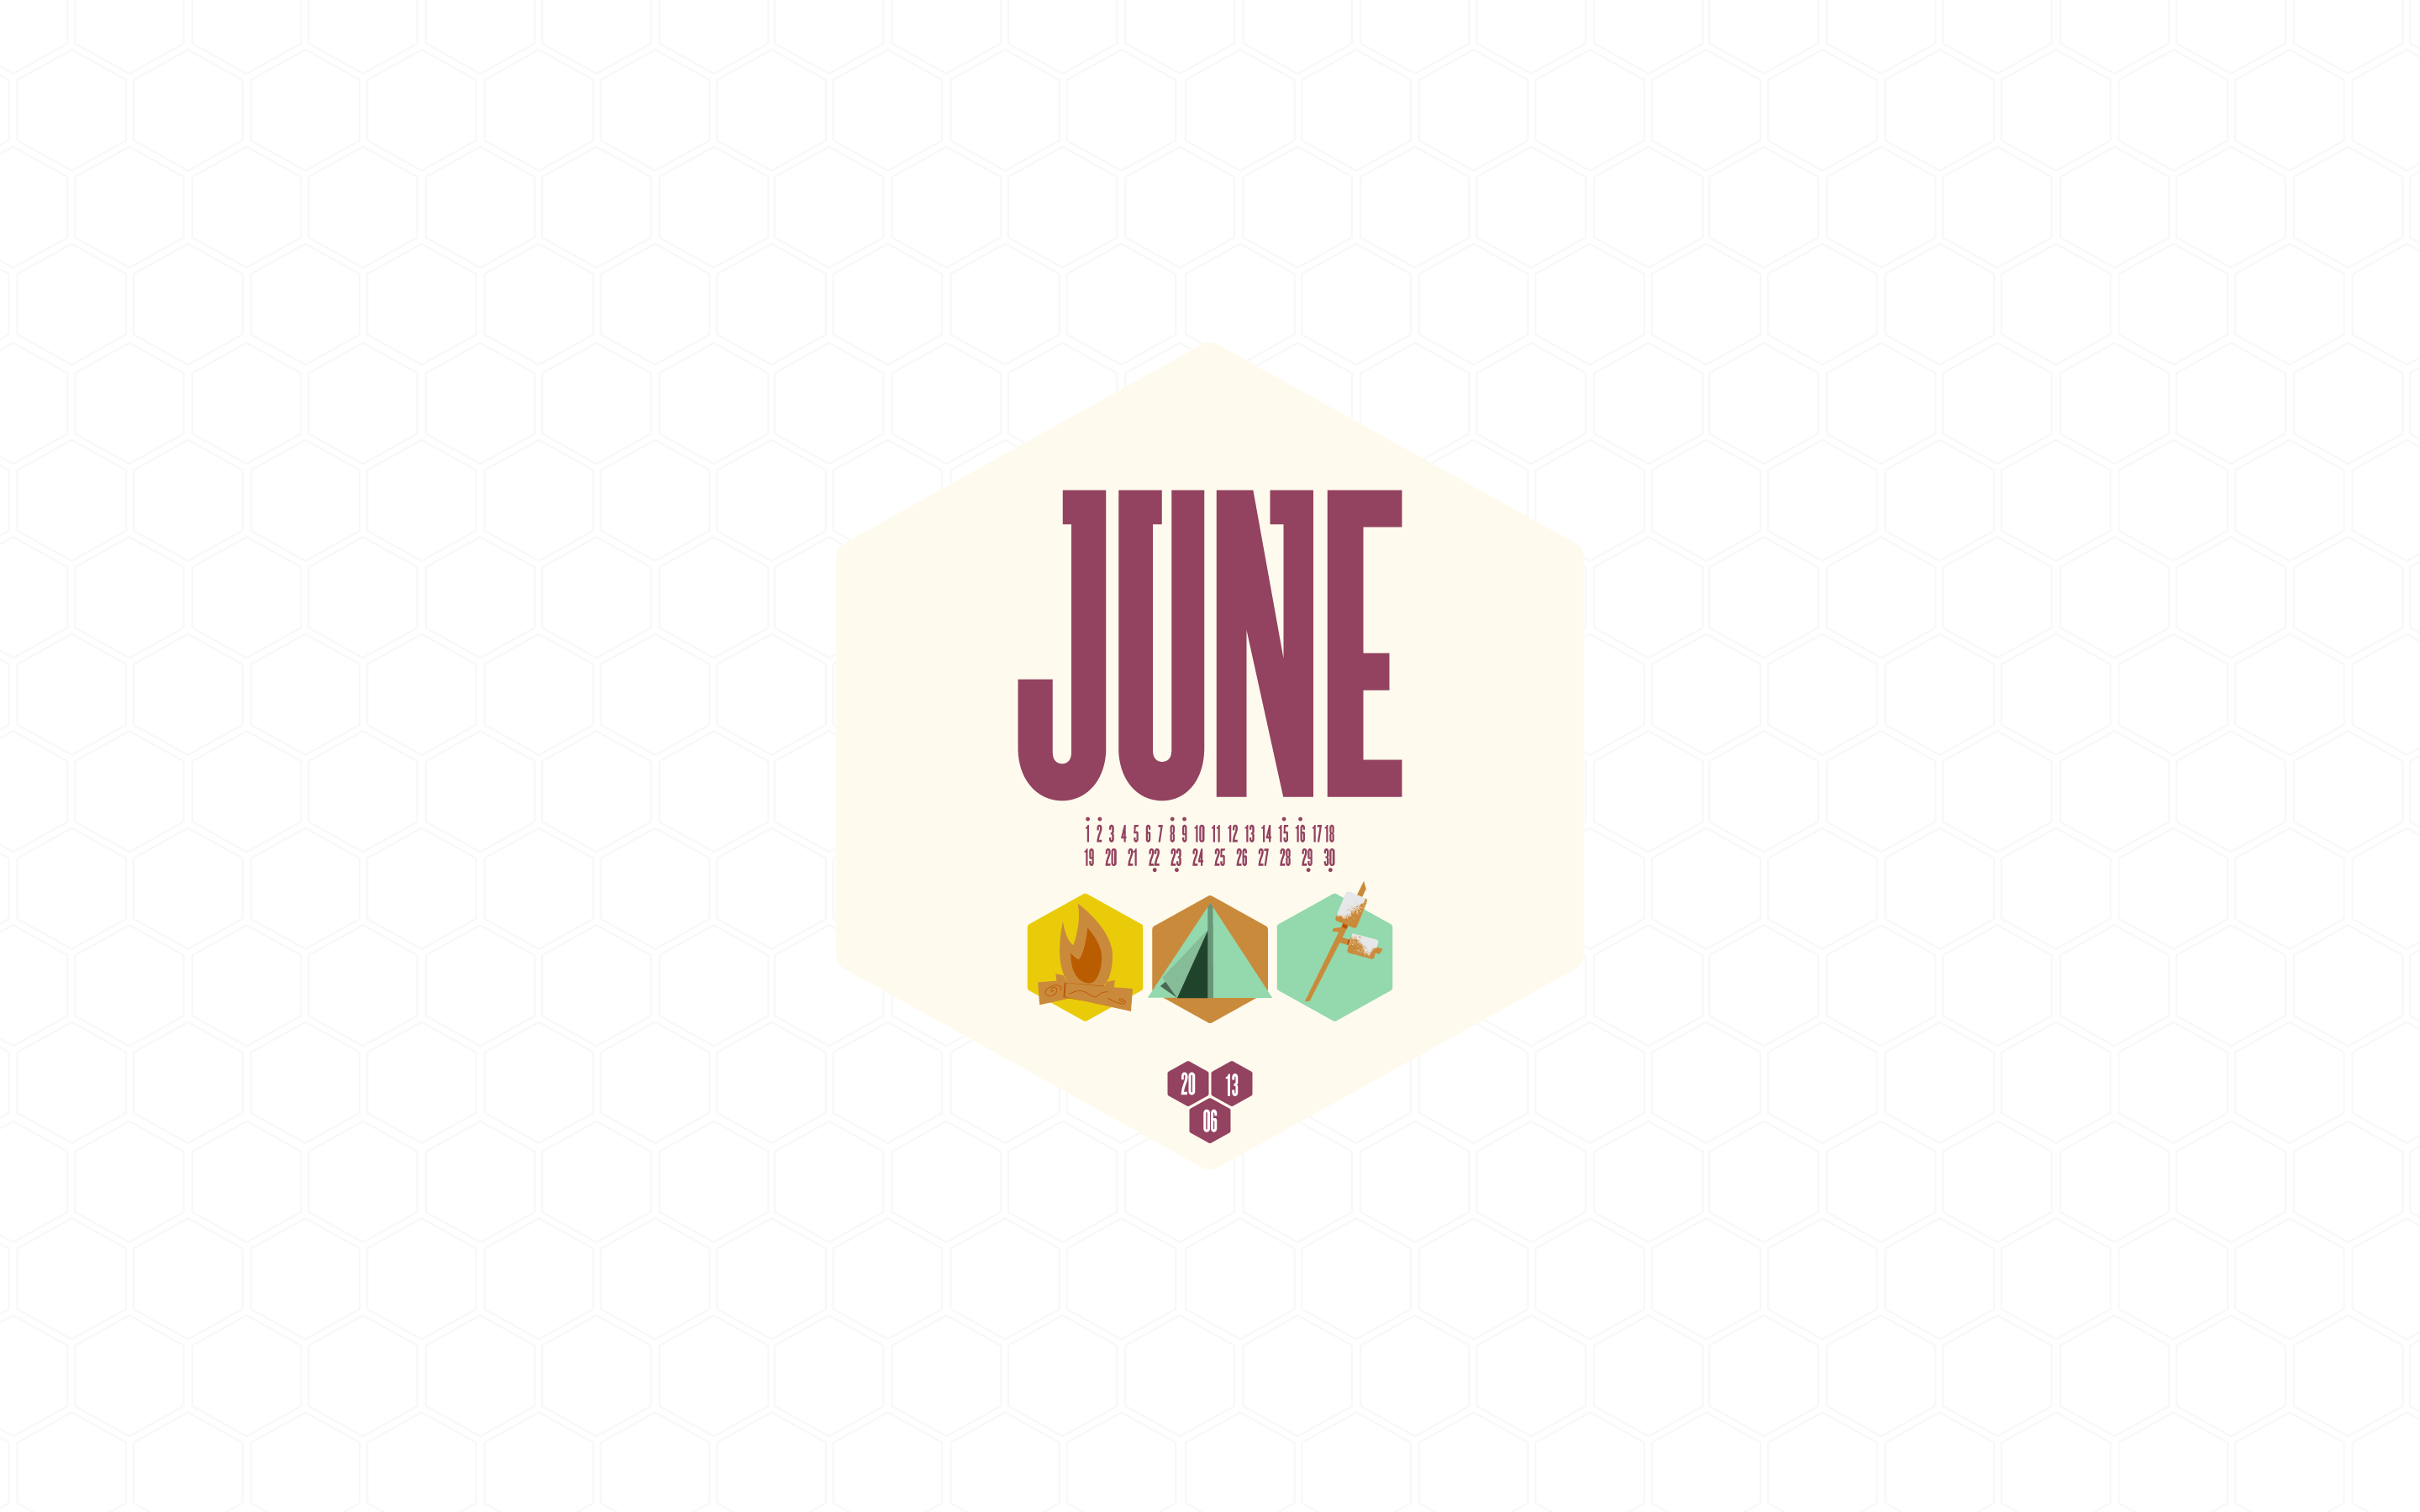 June - Live HD June Wallpapers, Photos